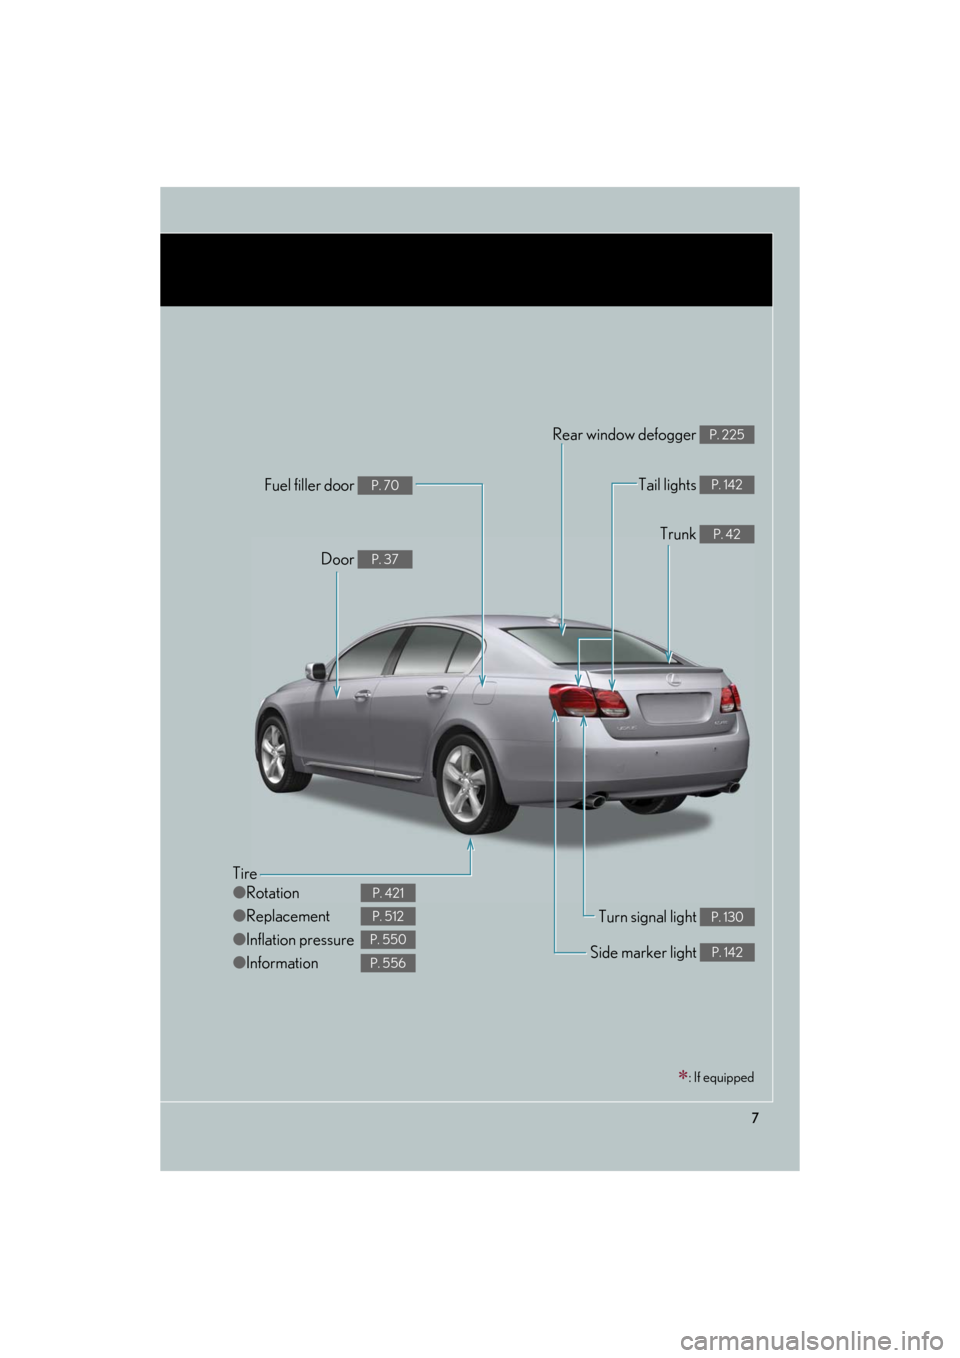 Lexus GS350 2008  Do-it-yourself maintenance / LEXUS 2008 GS460/350 OWNERS MANUAL (OM30A87U) 7 GS_G_U May 13, 2008 5:14 pm Tire ●Rotation ● Replacement ● Inflation pressure ● Information P. 421 P. 512 P. 550 P. 556 Tail lights P. 142 Side marker light P. 142 Trunk P. 42 Rear window de